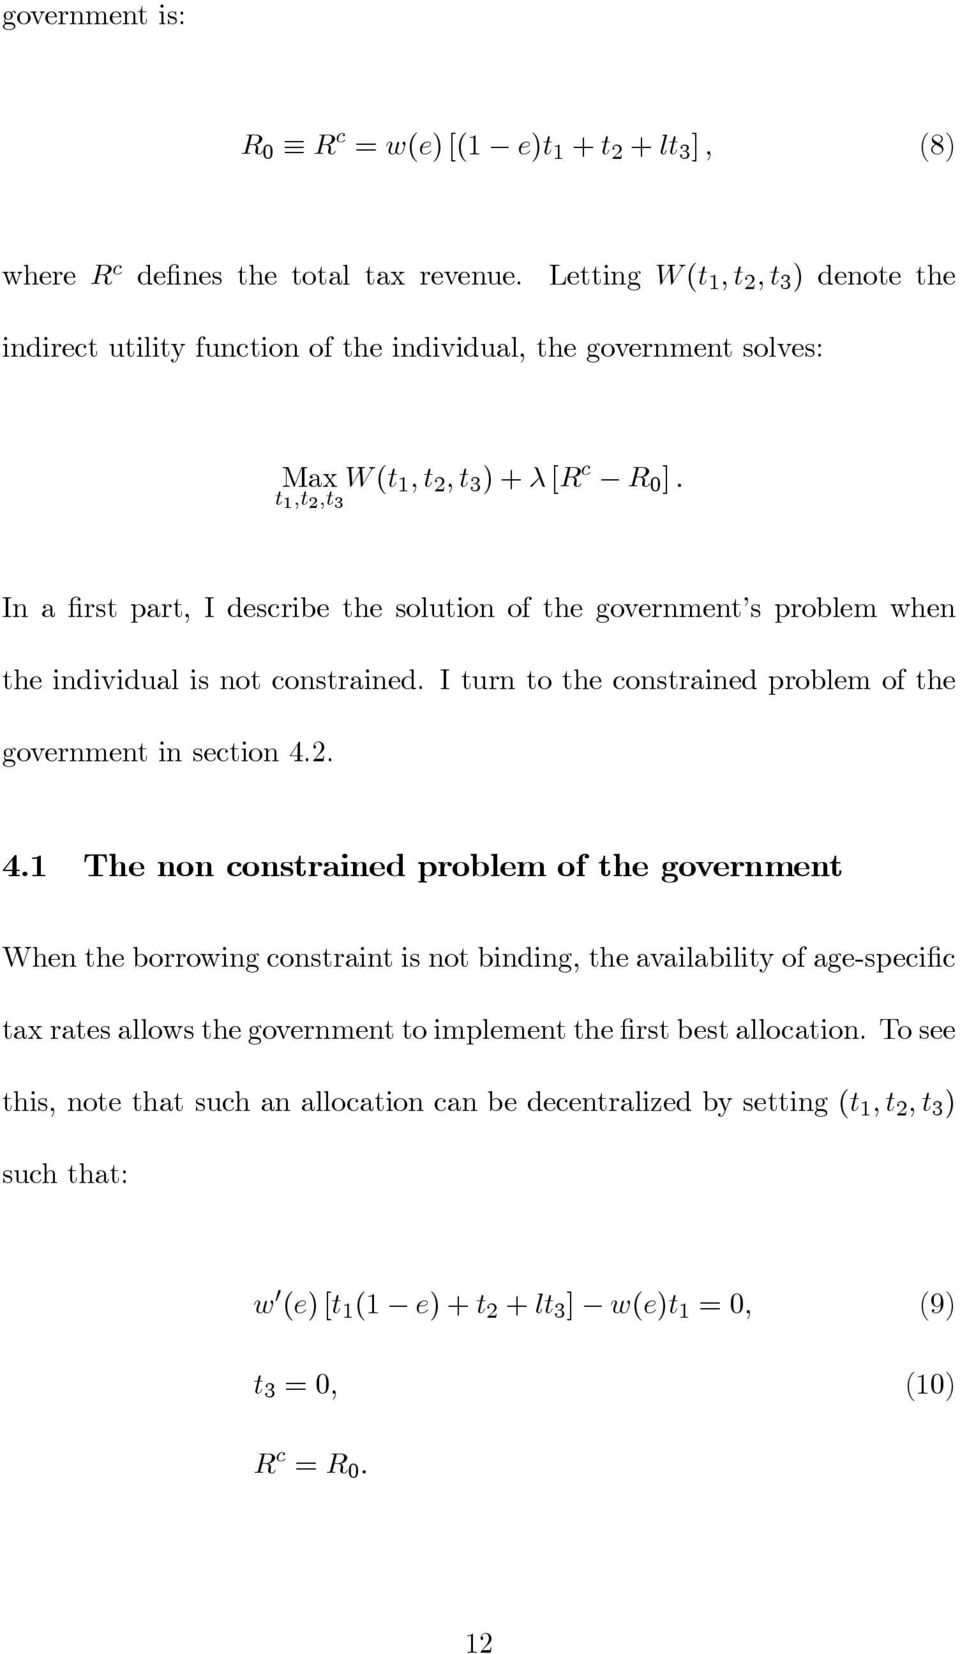 t 1,t 2,t 3 In a first part, I describe the solution of the government s problem when the individual is not constrained. I turn to the constrained problem of the government in section 4.